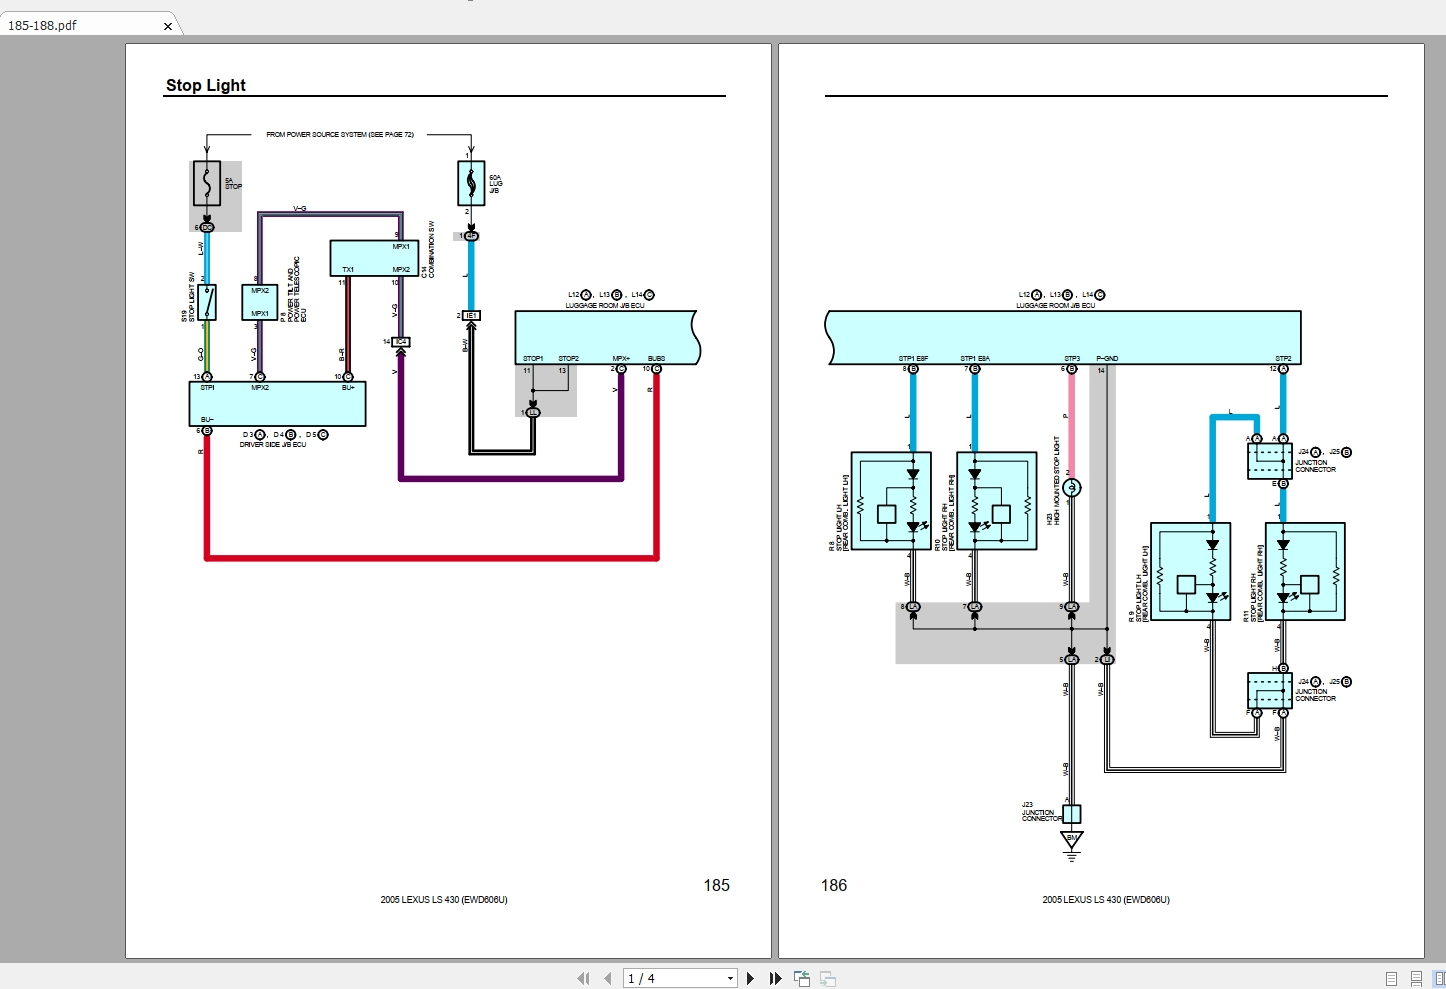 Lexus LS430 2005 (USA) Electrical Wiring Diagram ...